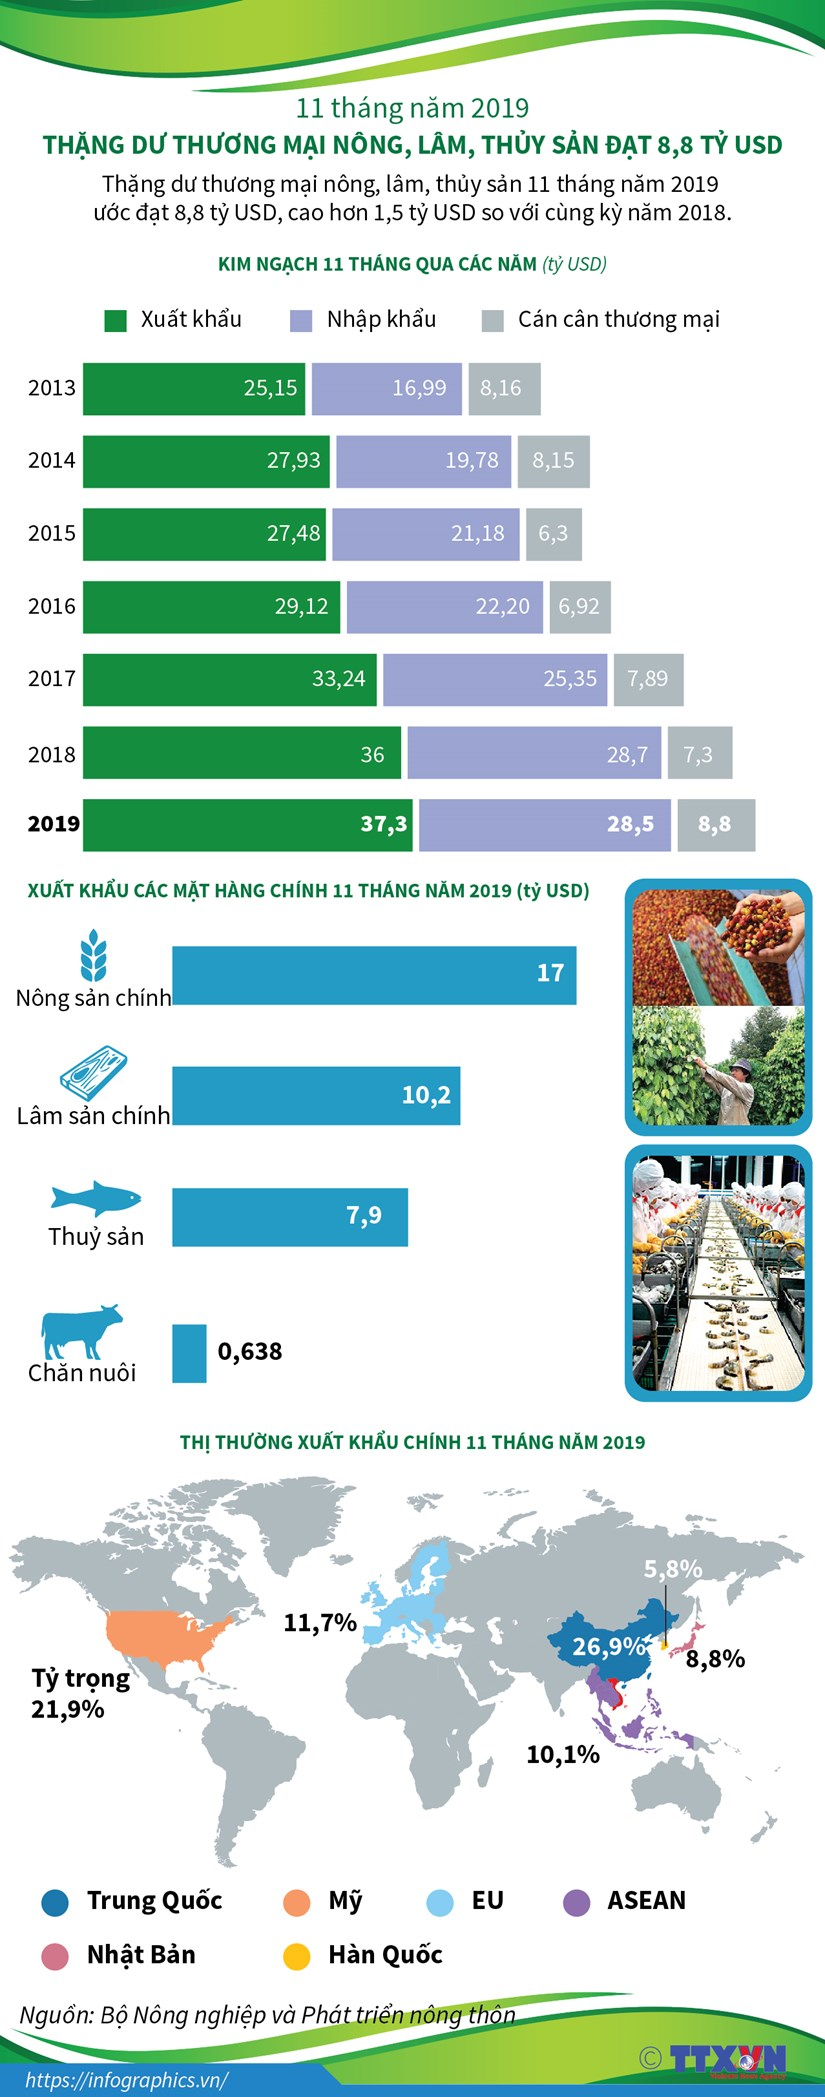 [Infographics] Thang du thuong mai nong, lam, thuy san dat 8,8 ty USD hinh anh 1